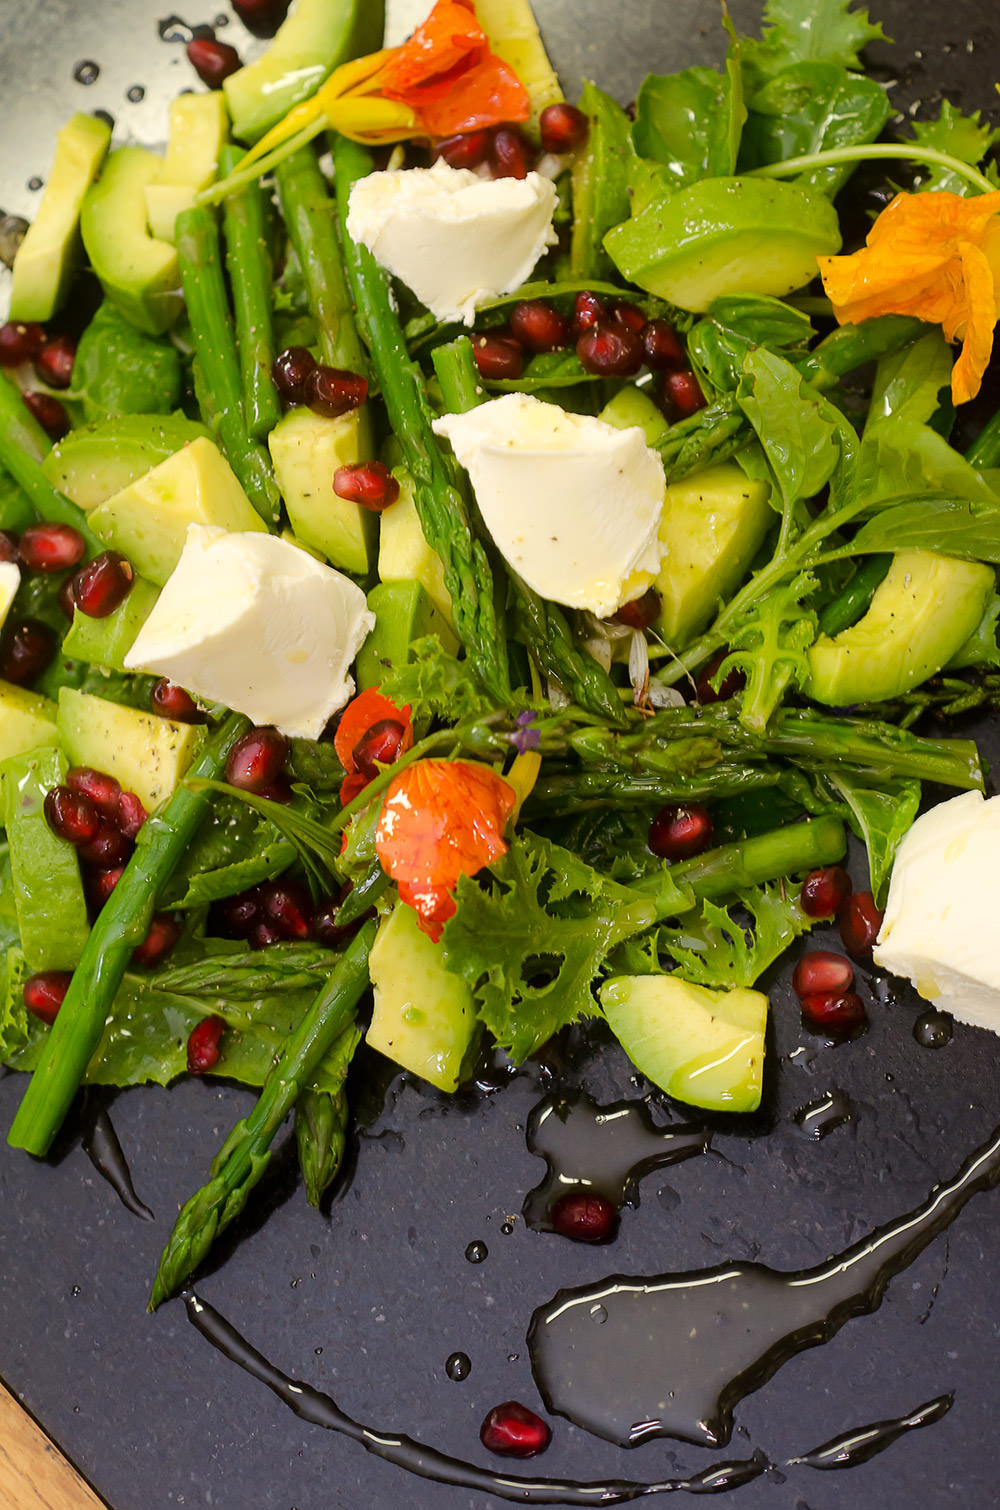 Avocado and Asparagus Salad